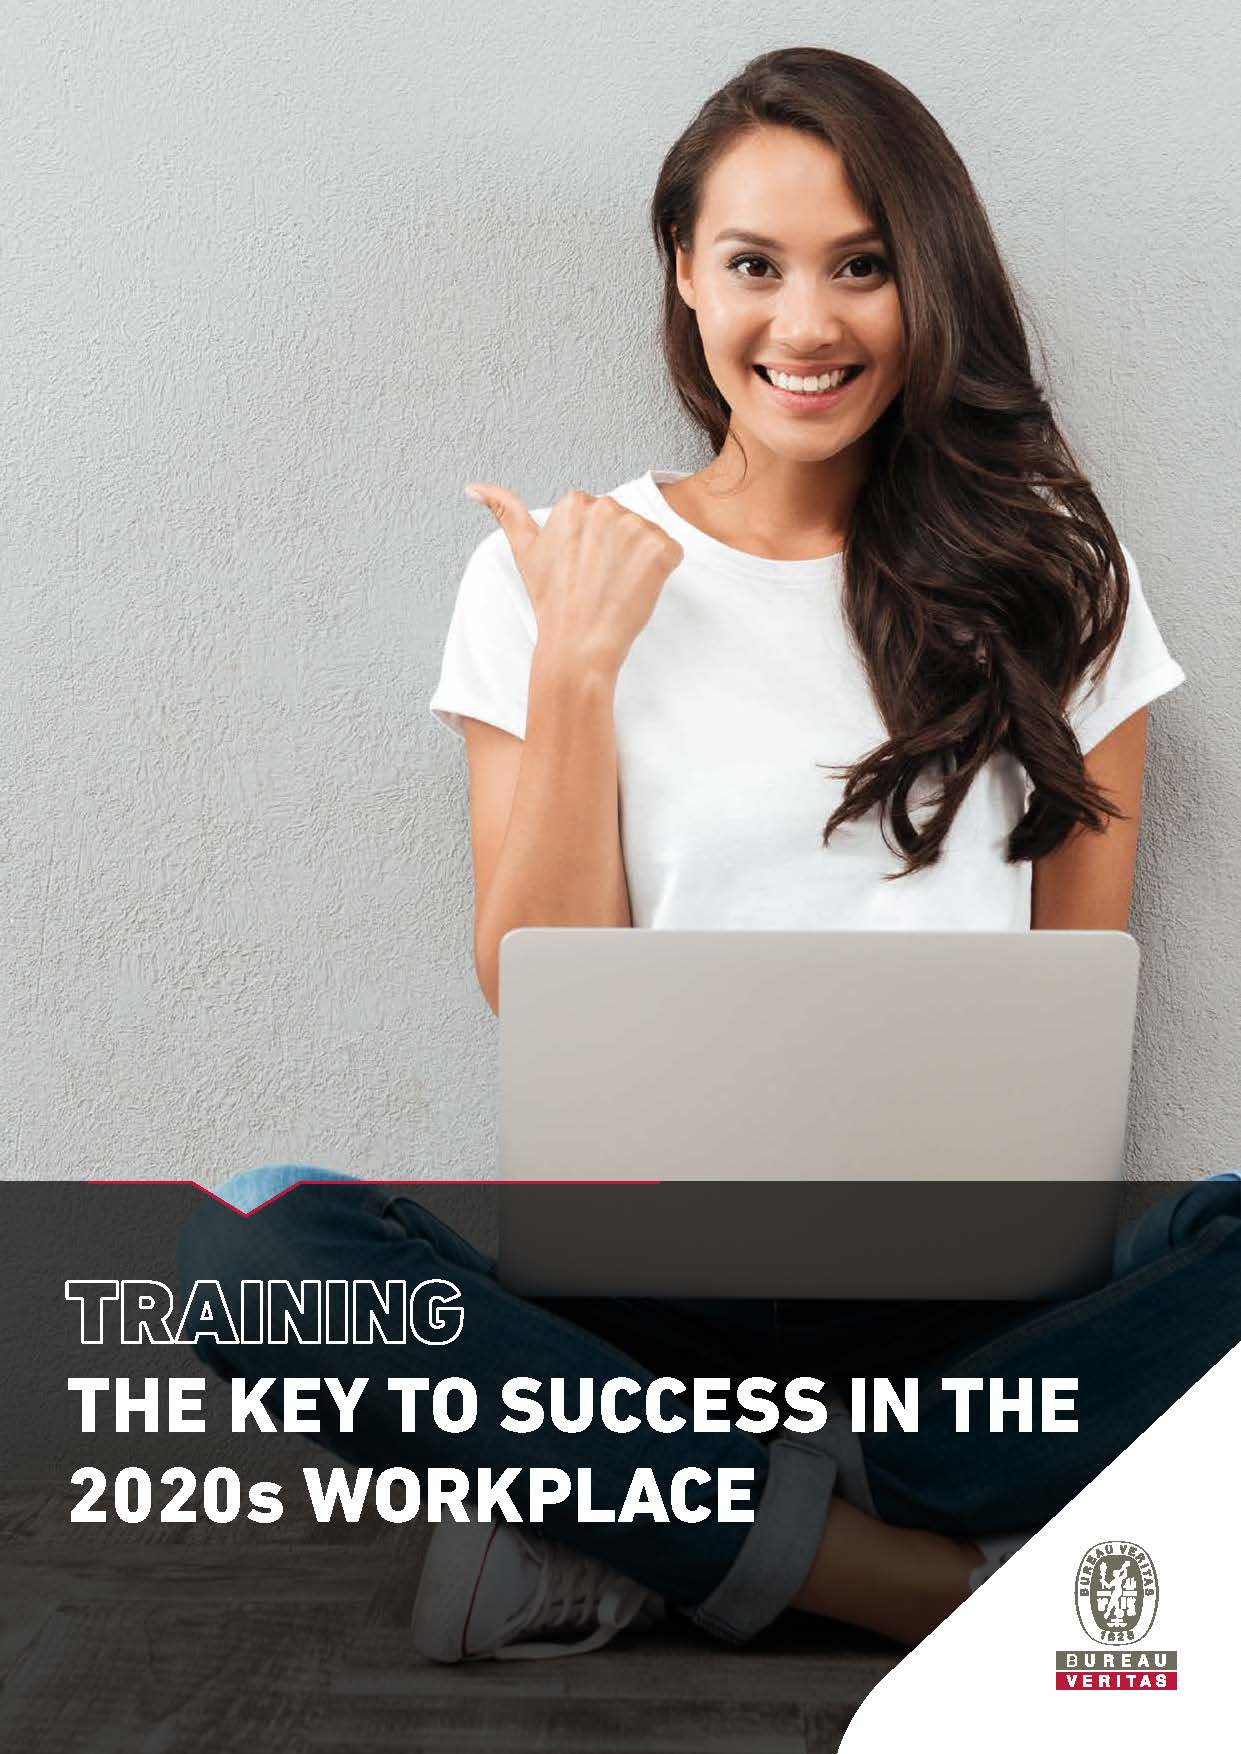 White paper - The key to success in the 2020s workplace